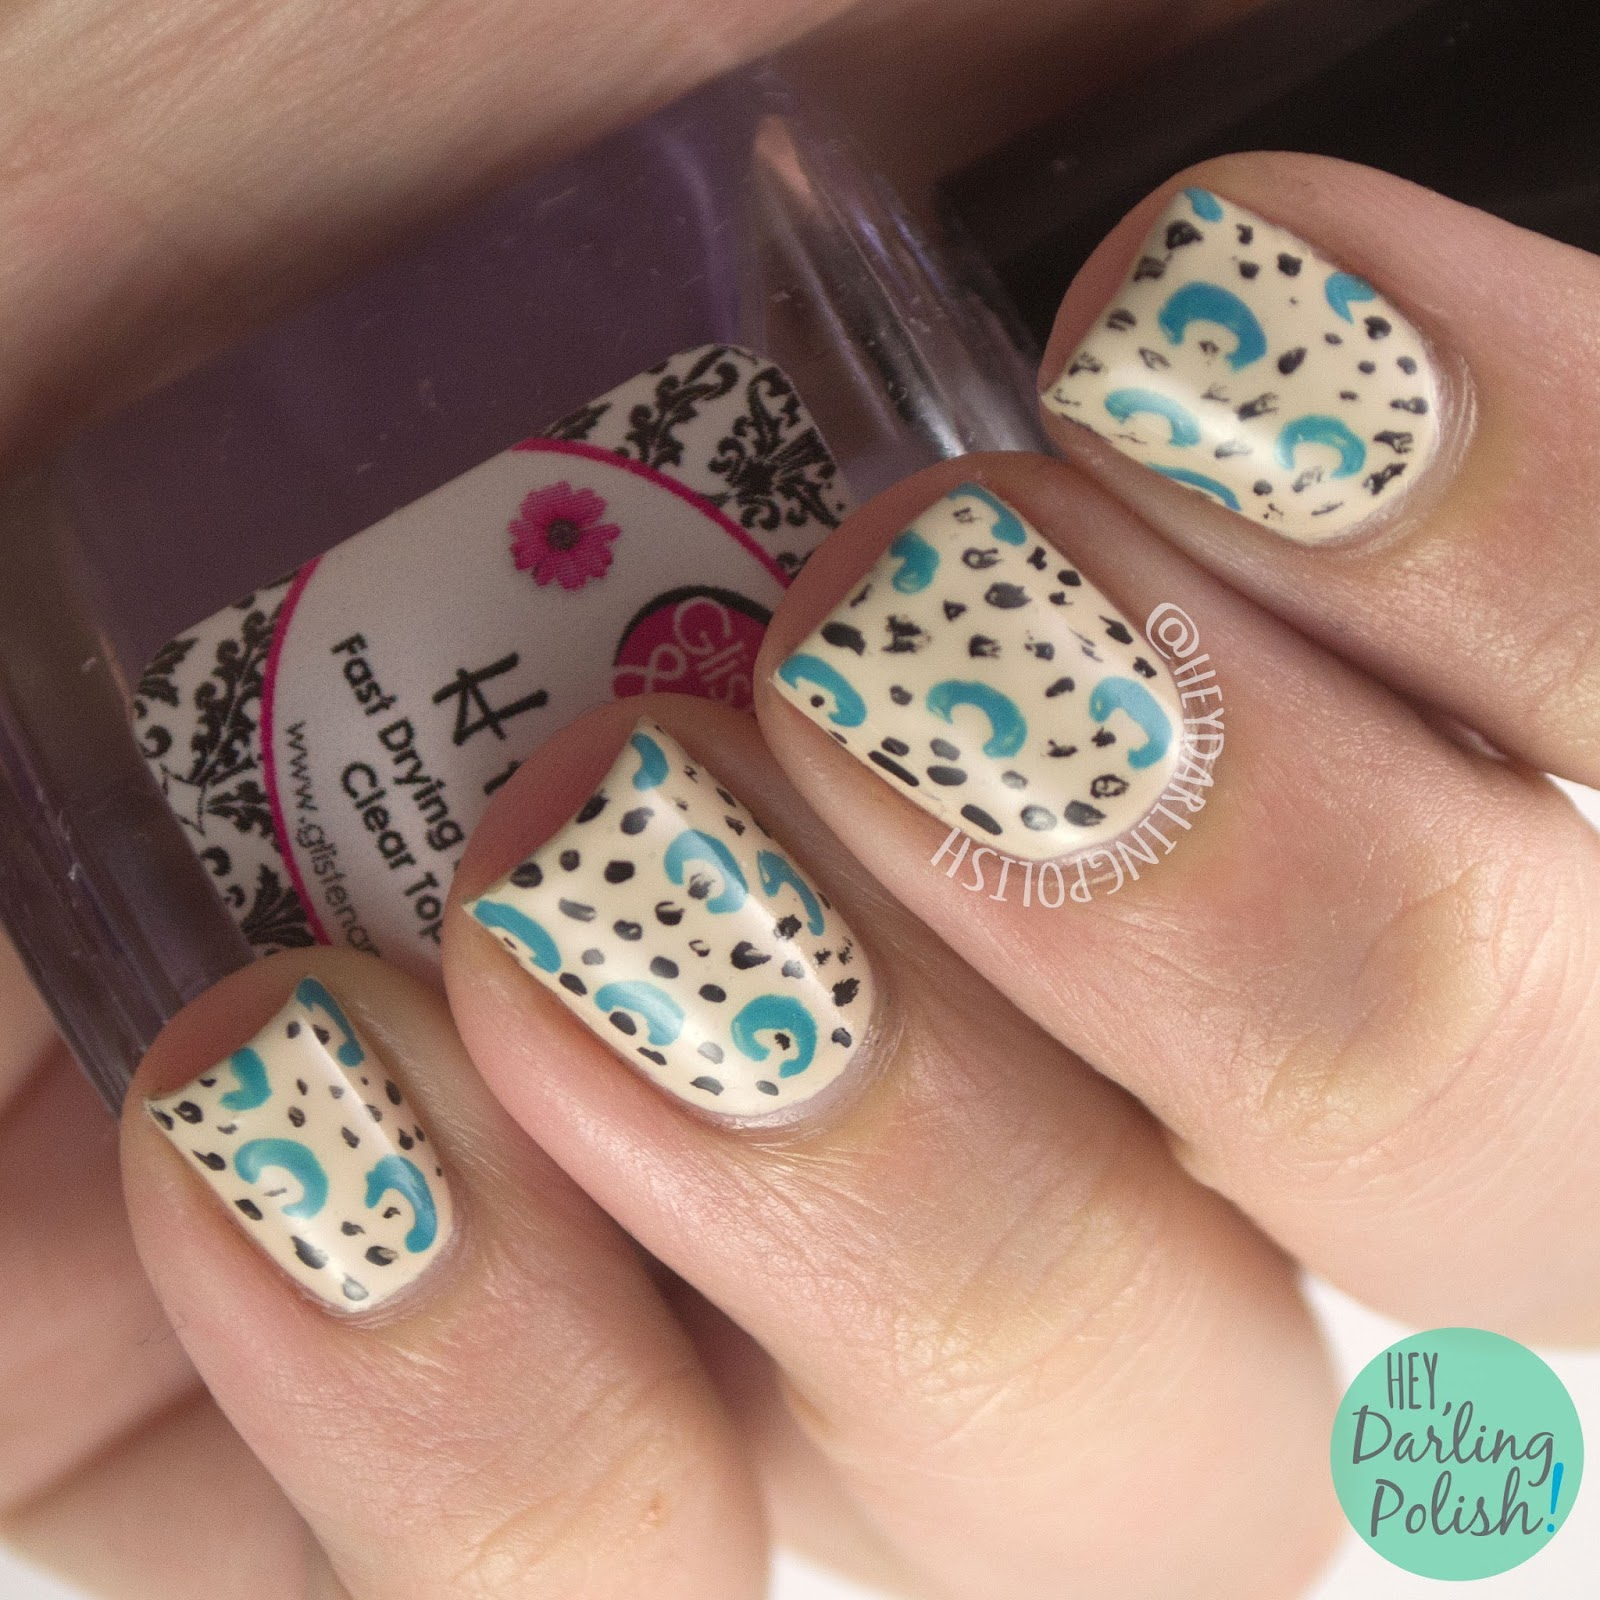 nails, nail art, nail polish, hey darling polish, pattern, 31 day challenge, 31dc2014